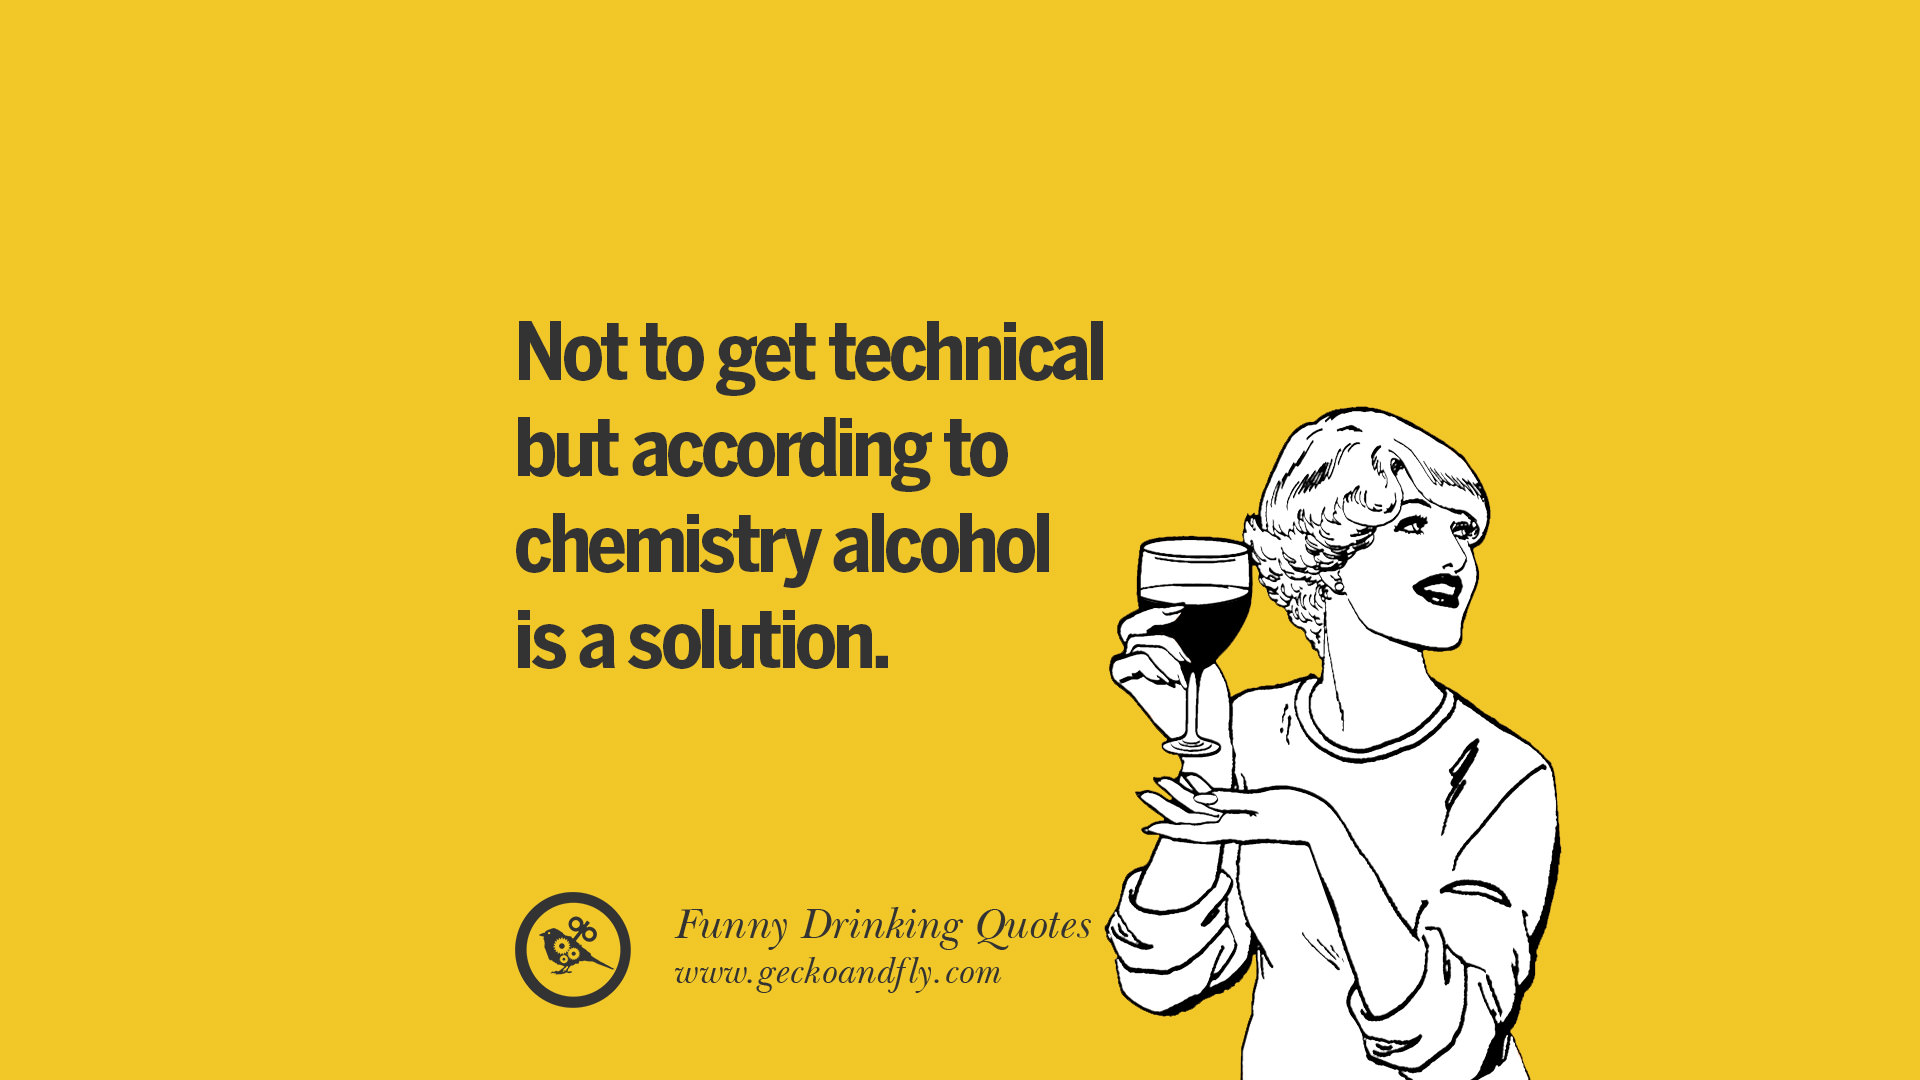 Not to get technical but according to chemistry alcohol is a solution.